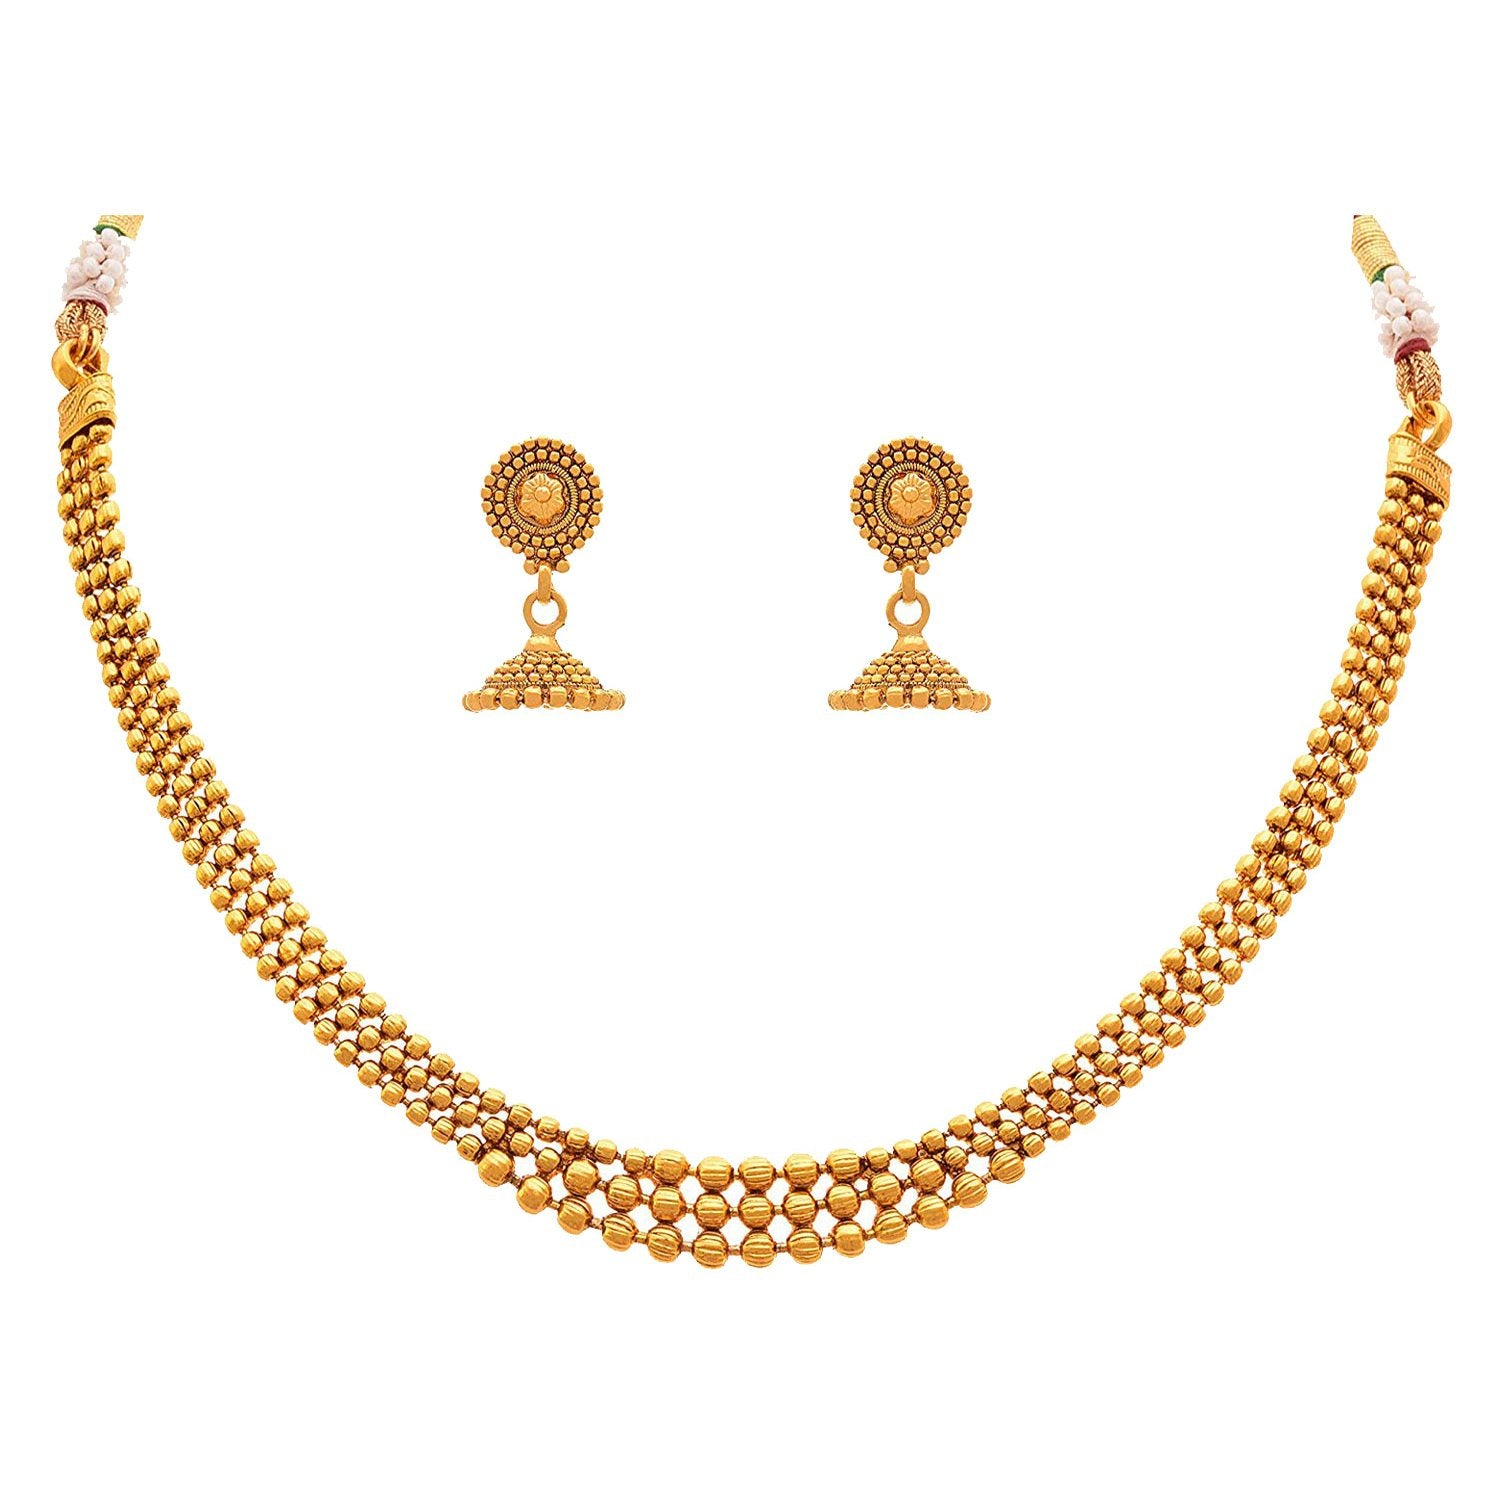 Traditional Ethnic One Gram Gold Plated Gold Beads Necklace Set With Jhumka Earrings For Women